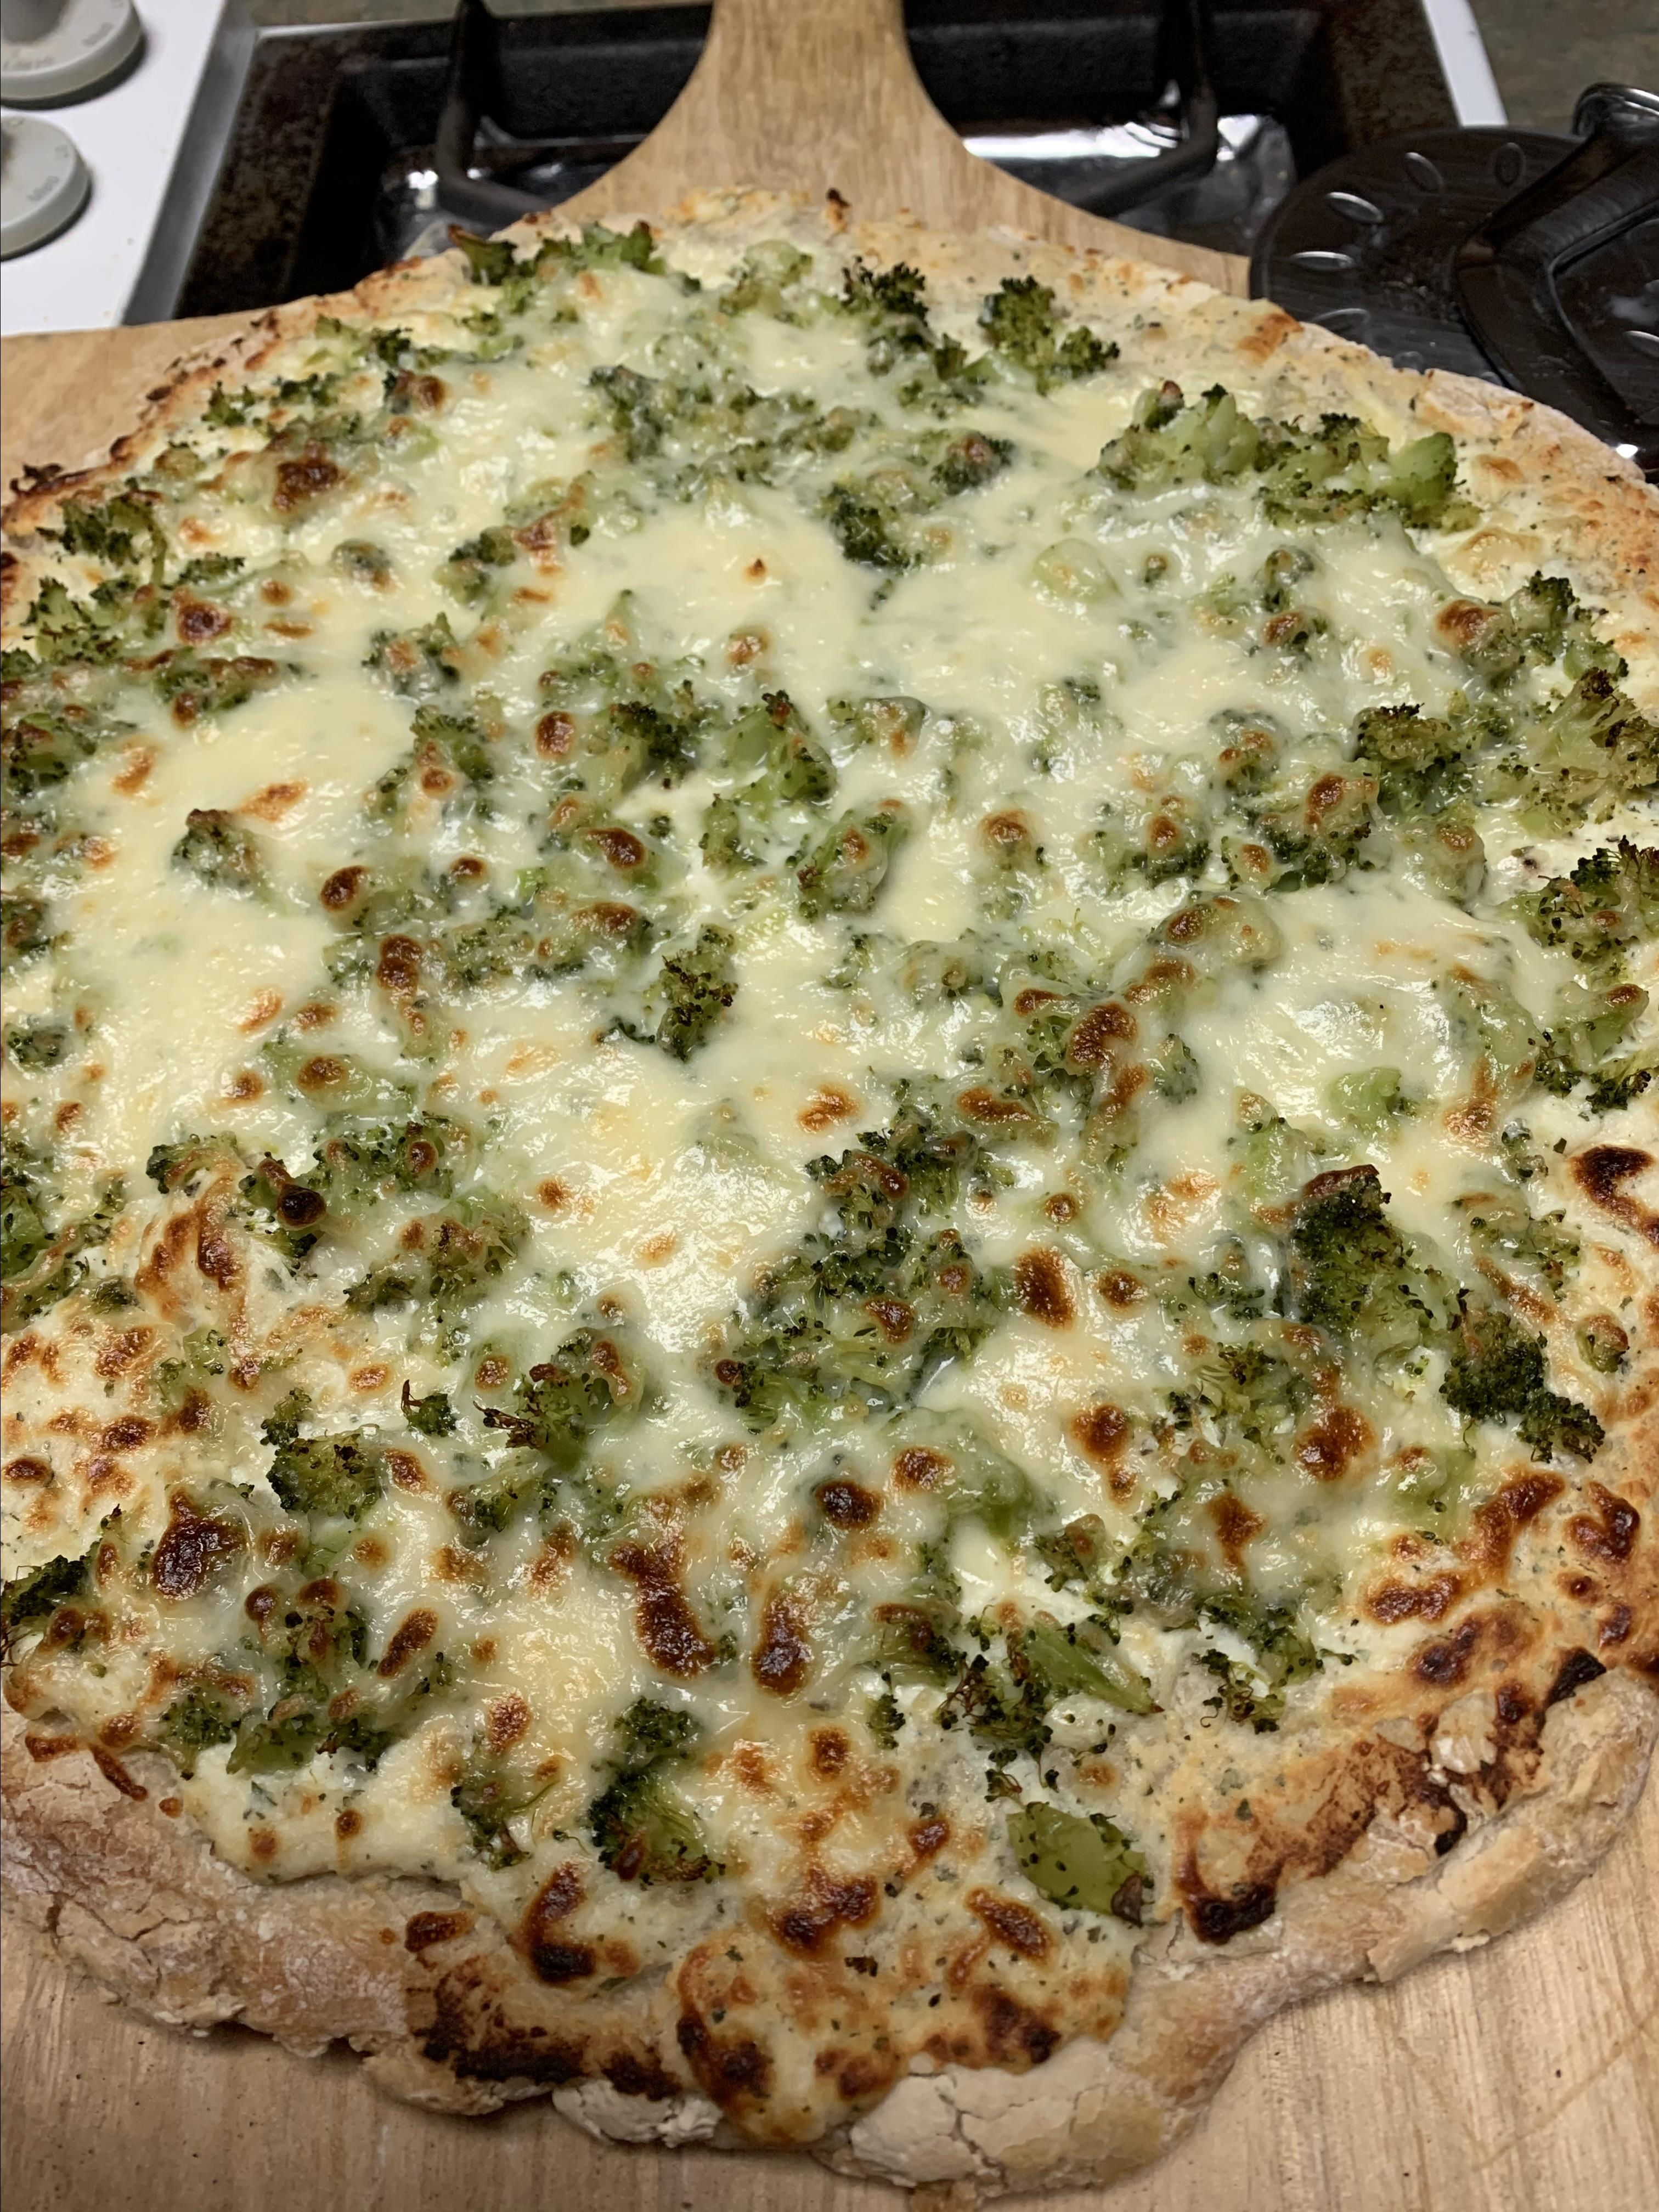 Fast and Easy Ricotta Cheese Pizza with Mushrooms, Broccoli, and Chicken tcasa